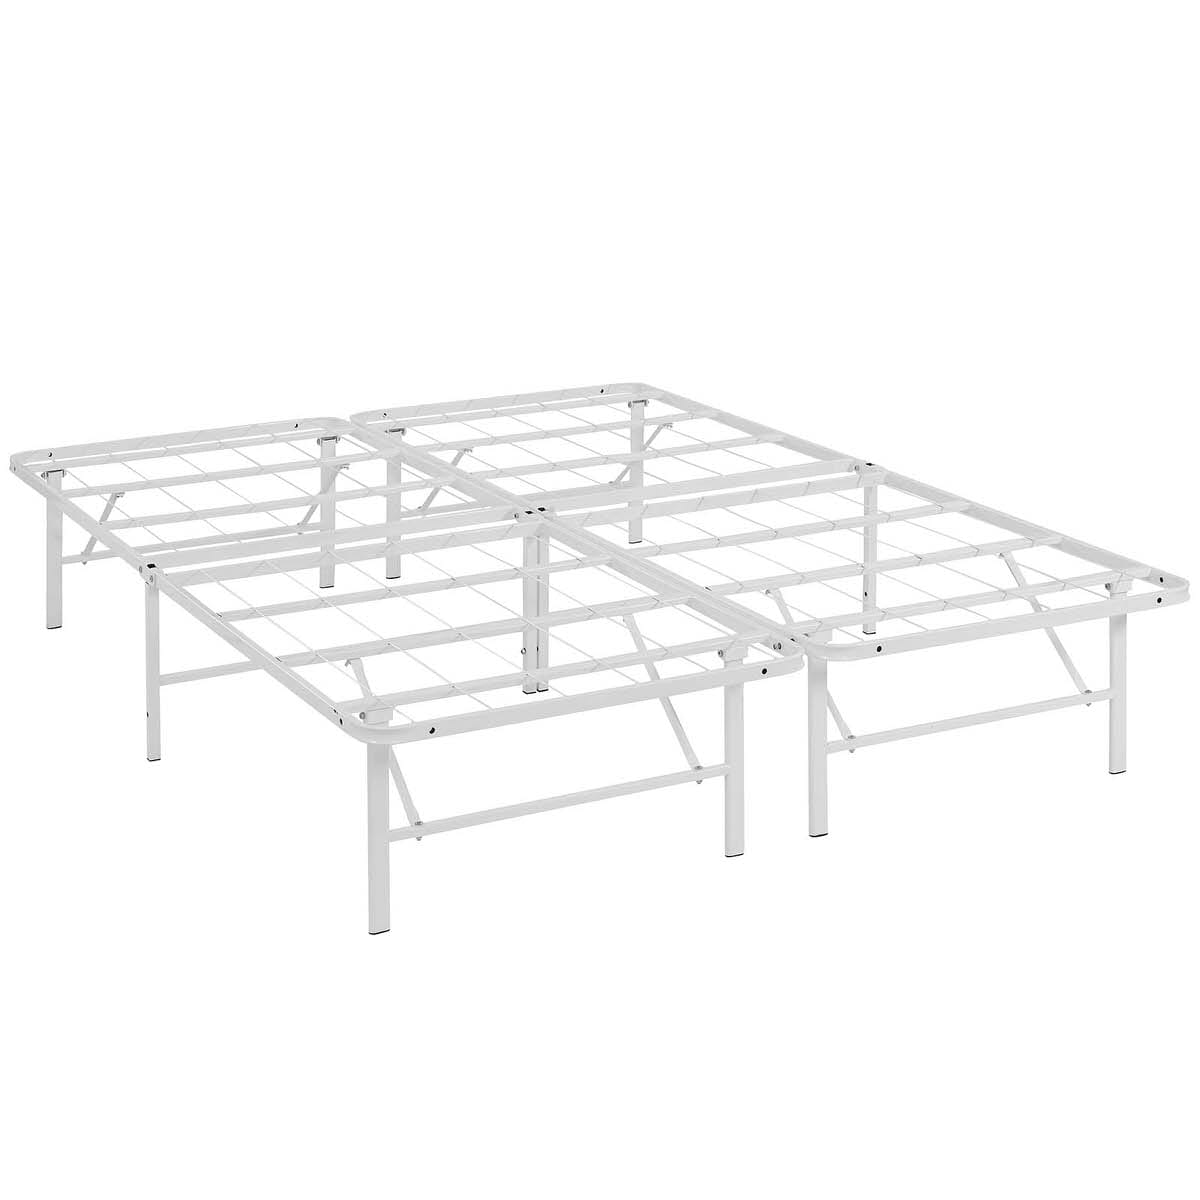 Horizon Queen Stainless Steel Bed Frame White by Modern Living